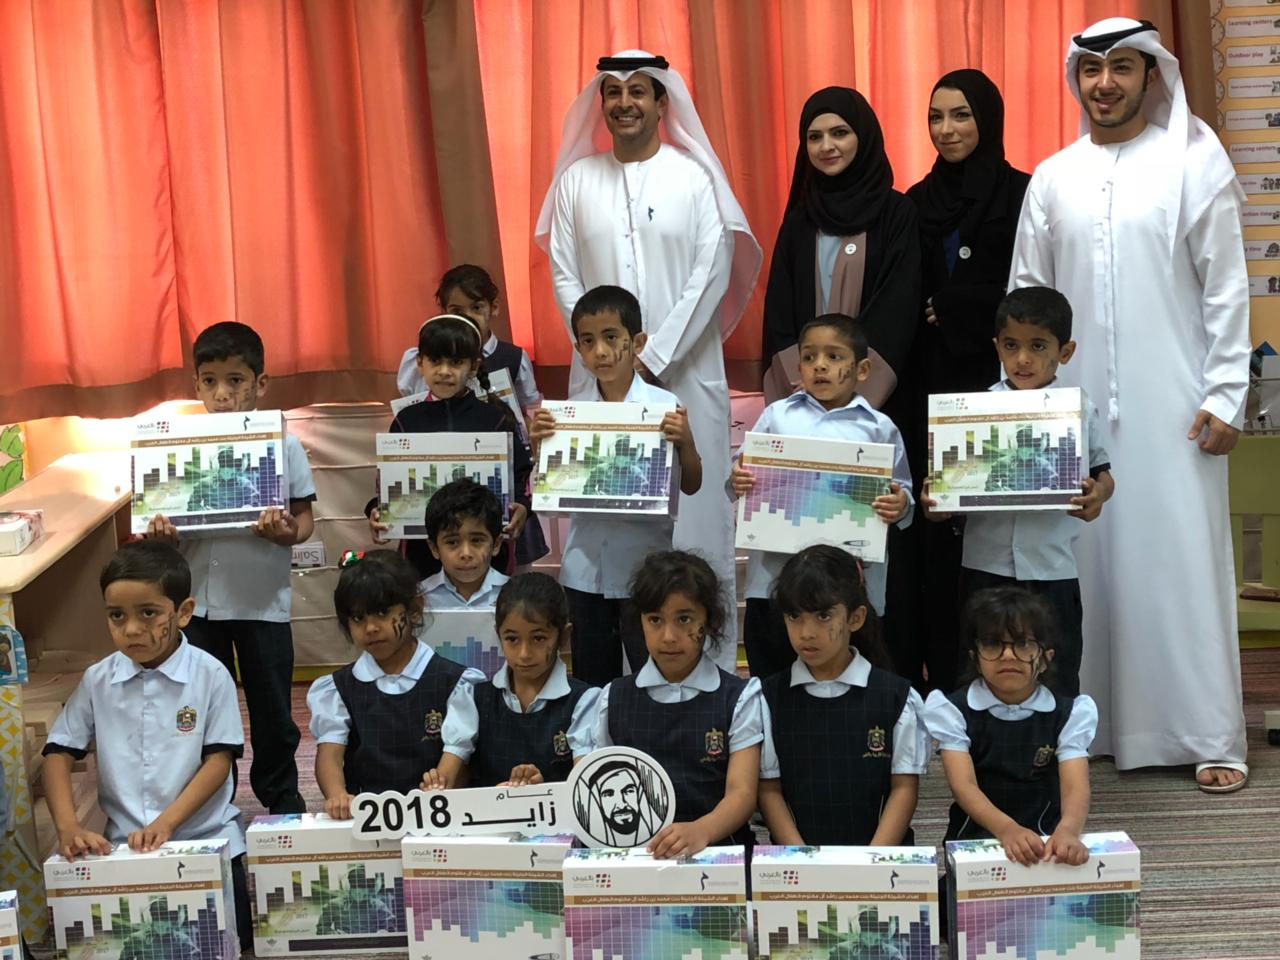 mbrf, hsbc distribute 700 'smart reading library bags' to children2